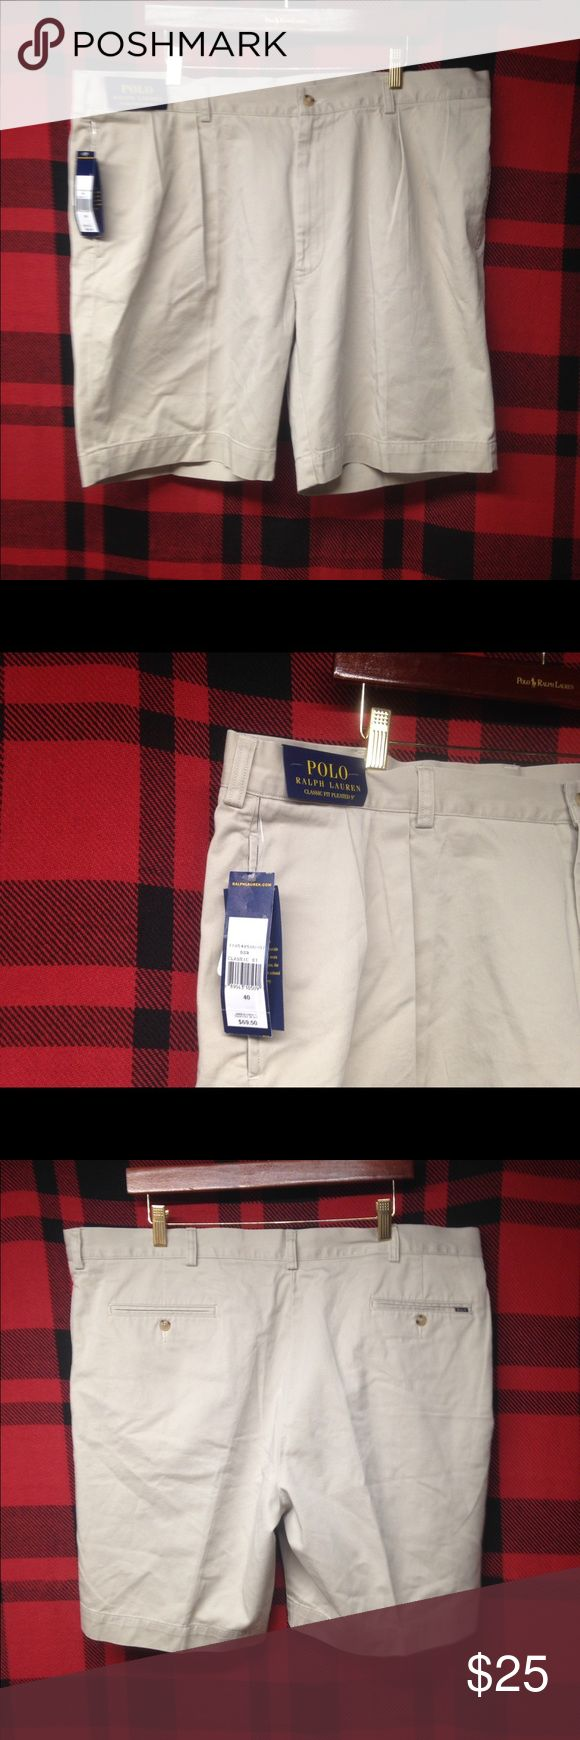 NWT Polo Ralph Lauren shorts sz40 NWT POLO Ralph Lauren classic chino pleated shorts sz 40 classic style staple Polo by Ralph Lauren Shorts Flat Front